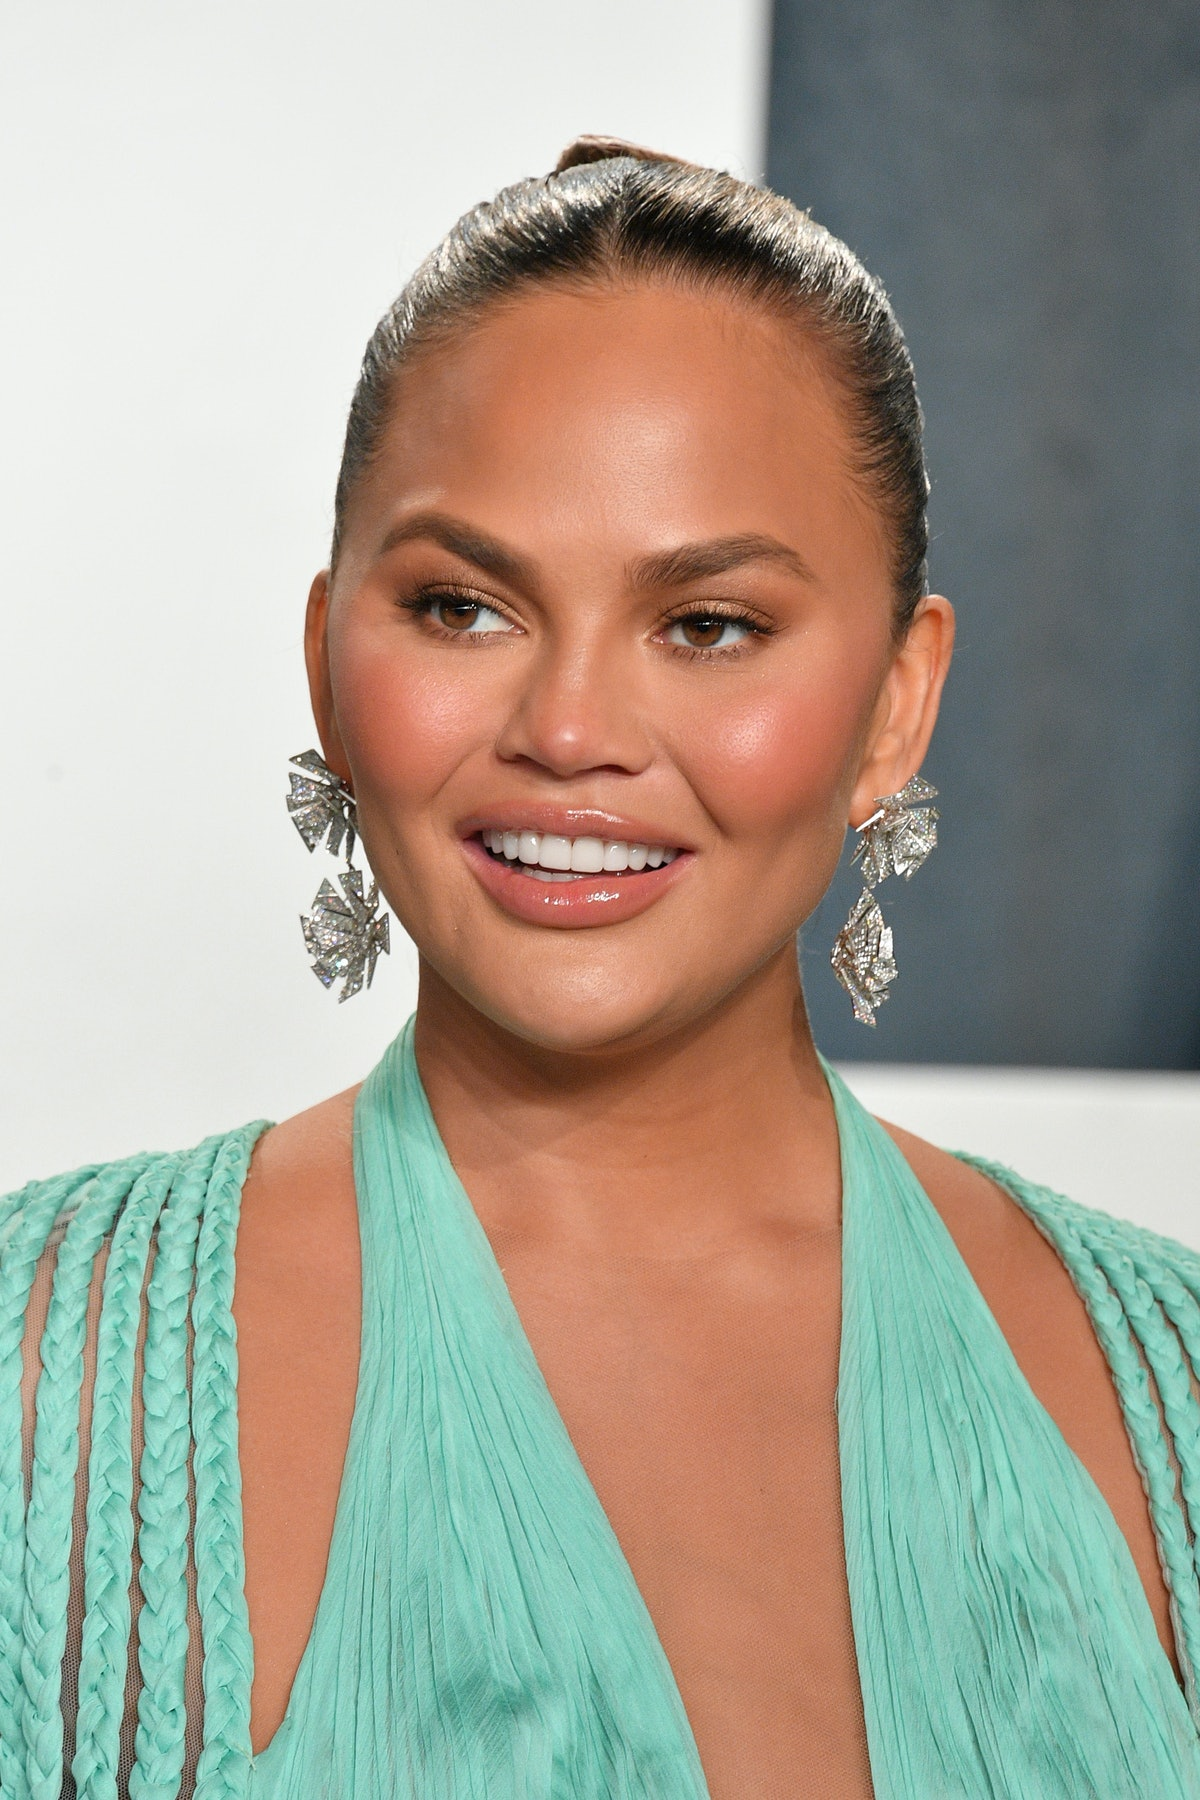 Chrissy Teigen left 'Never Have I Ever' Season 2 amid the recent bullying controversy.